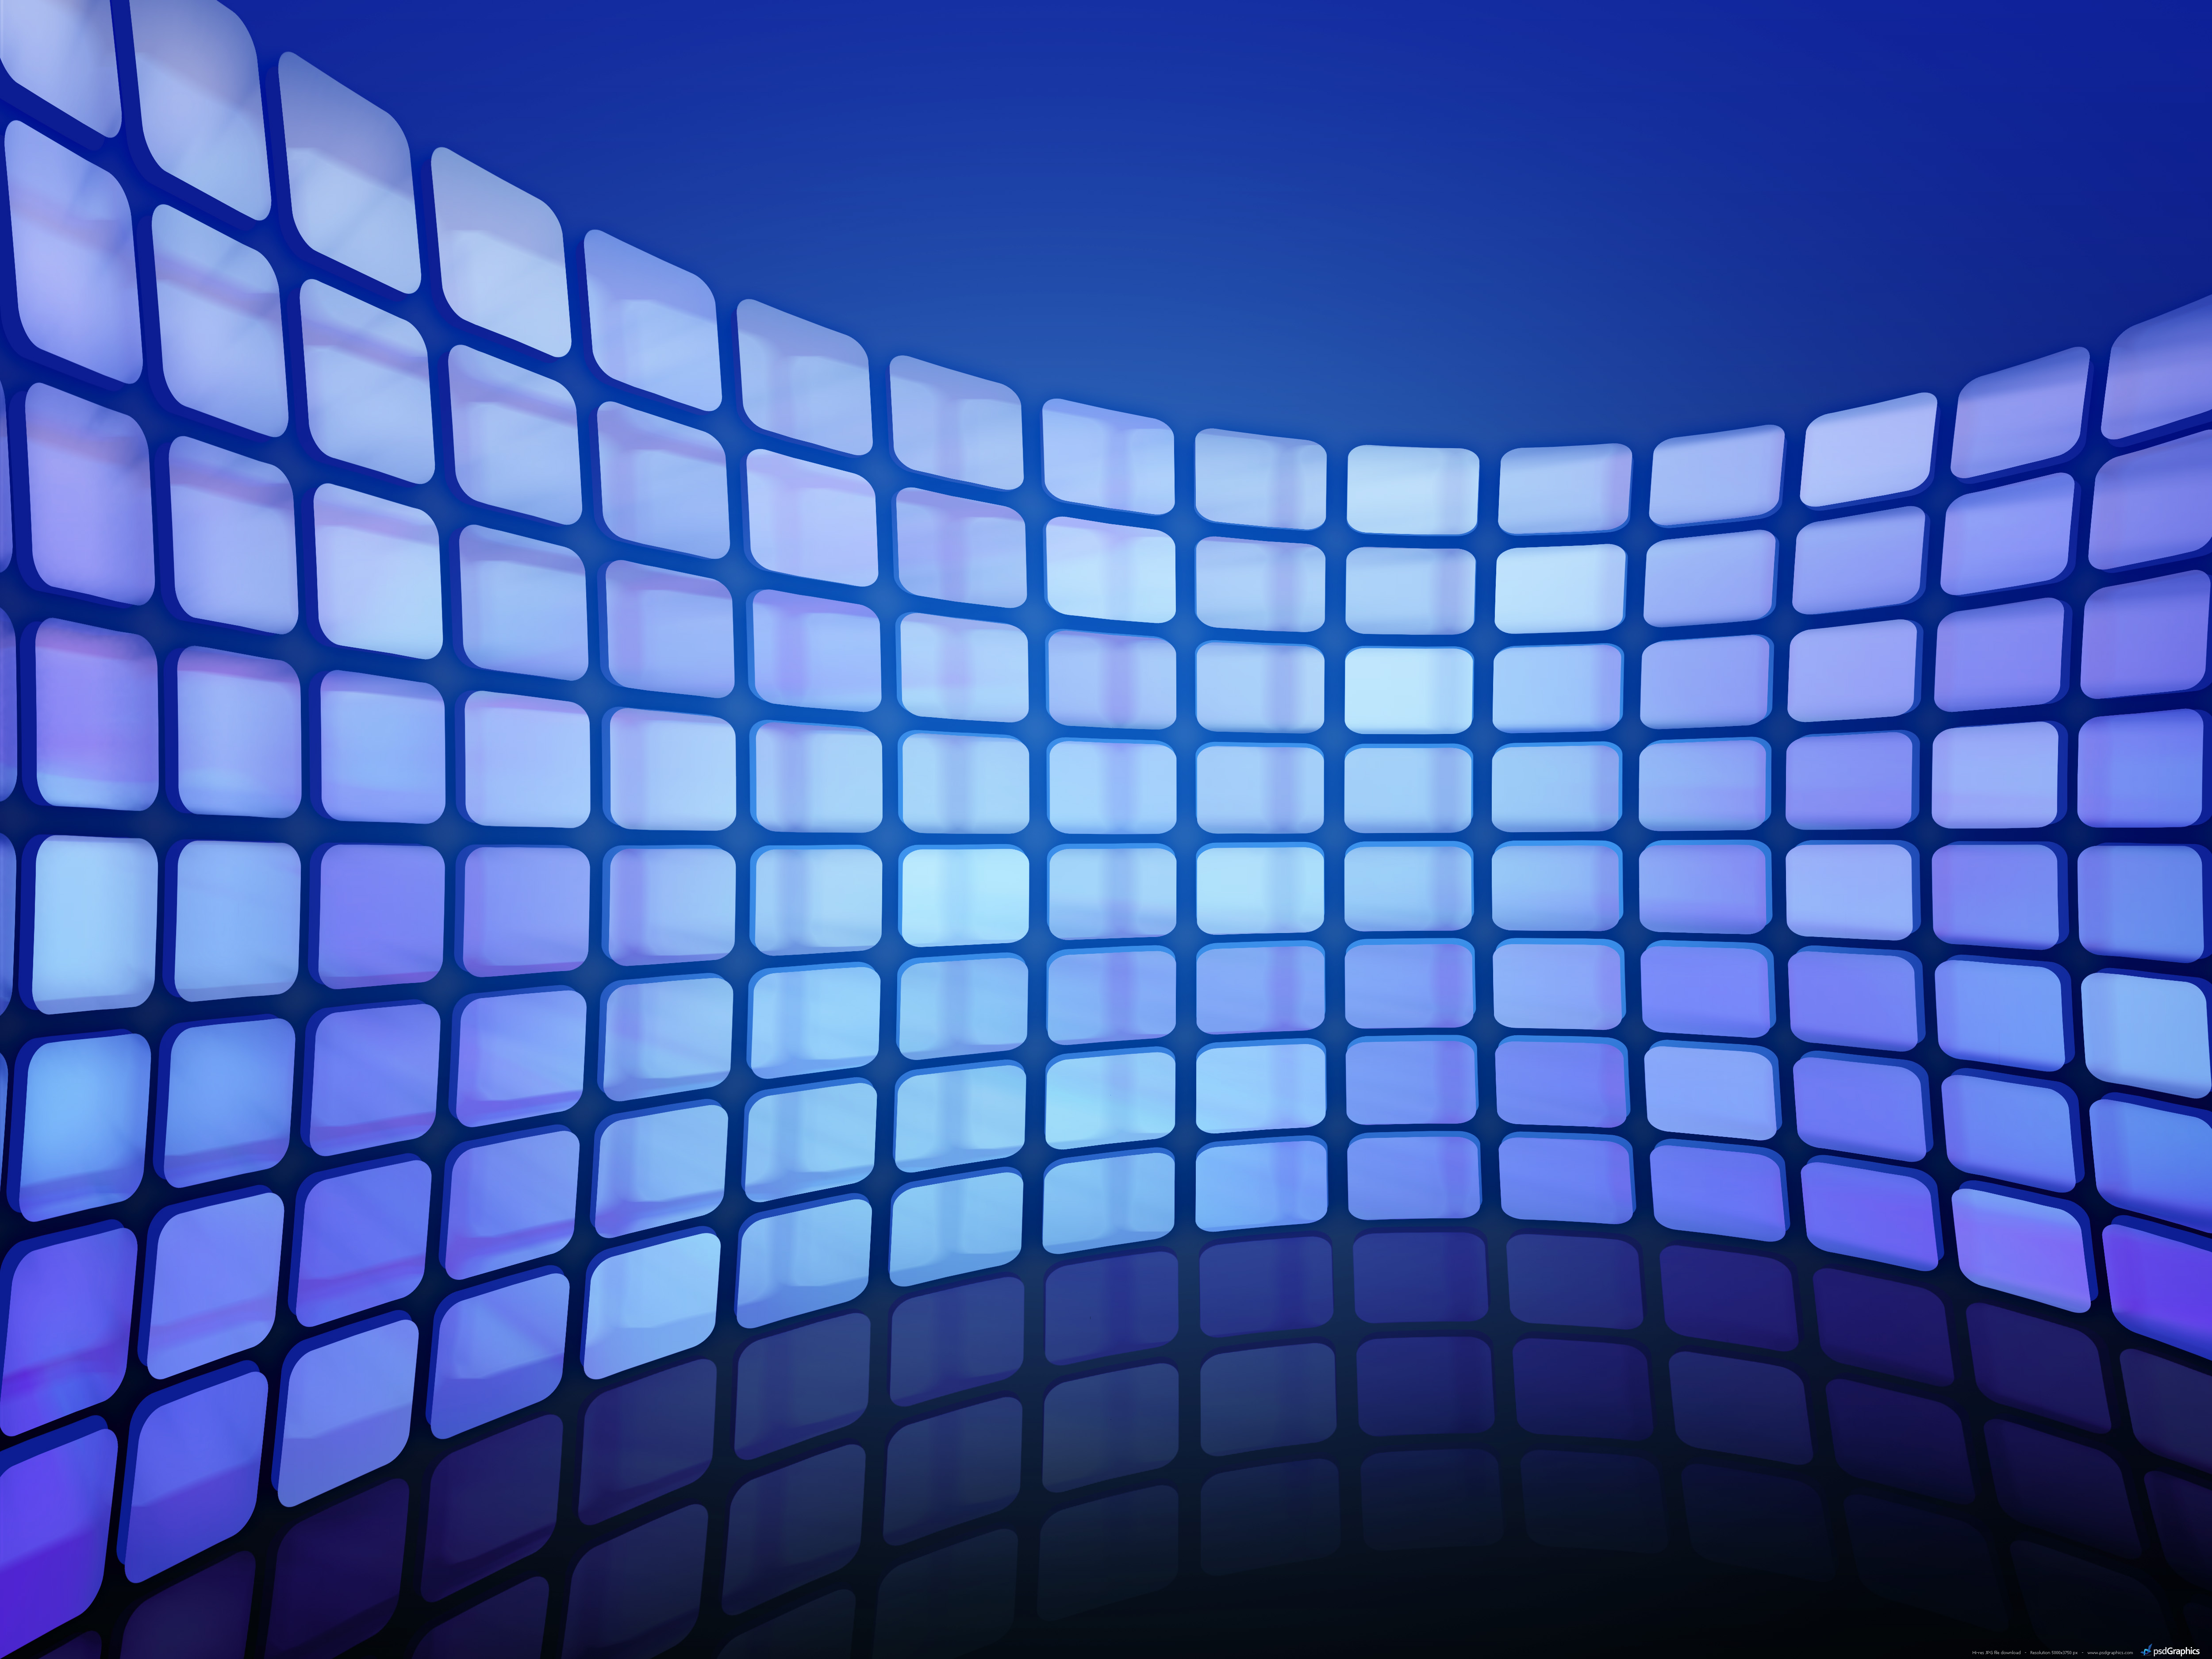 background abstract background abstract dark blue background beautiful 5000x3750